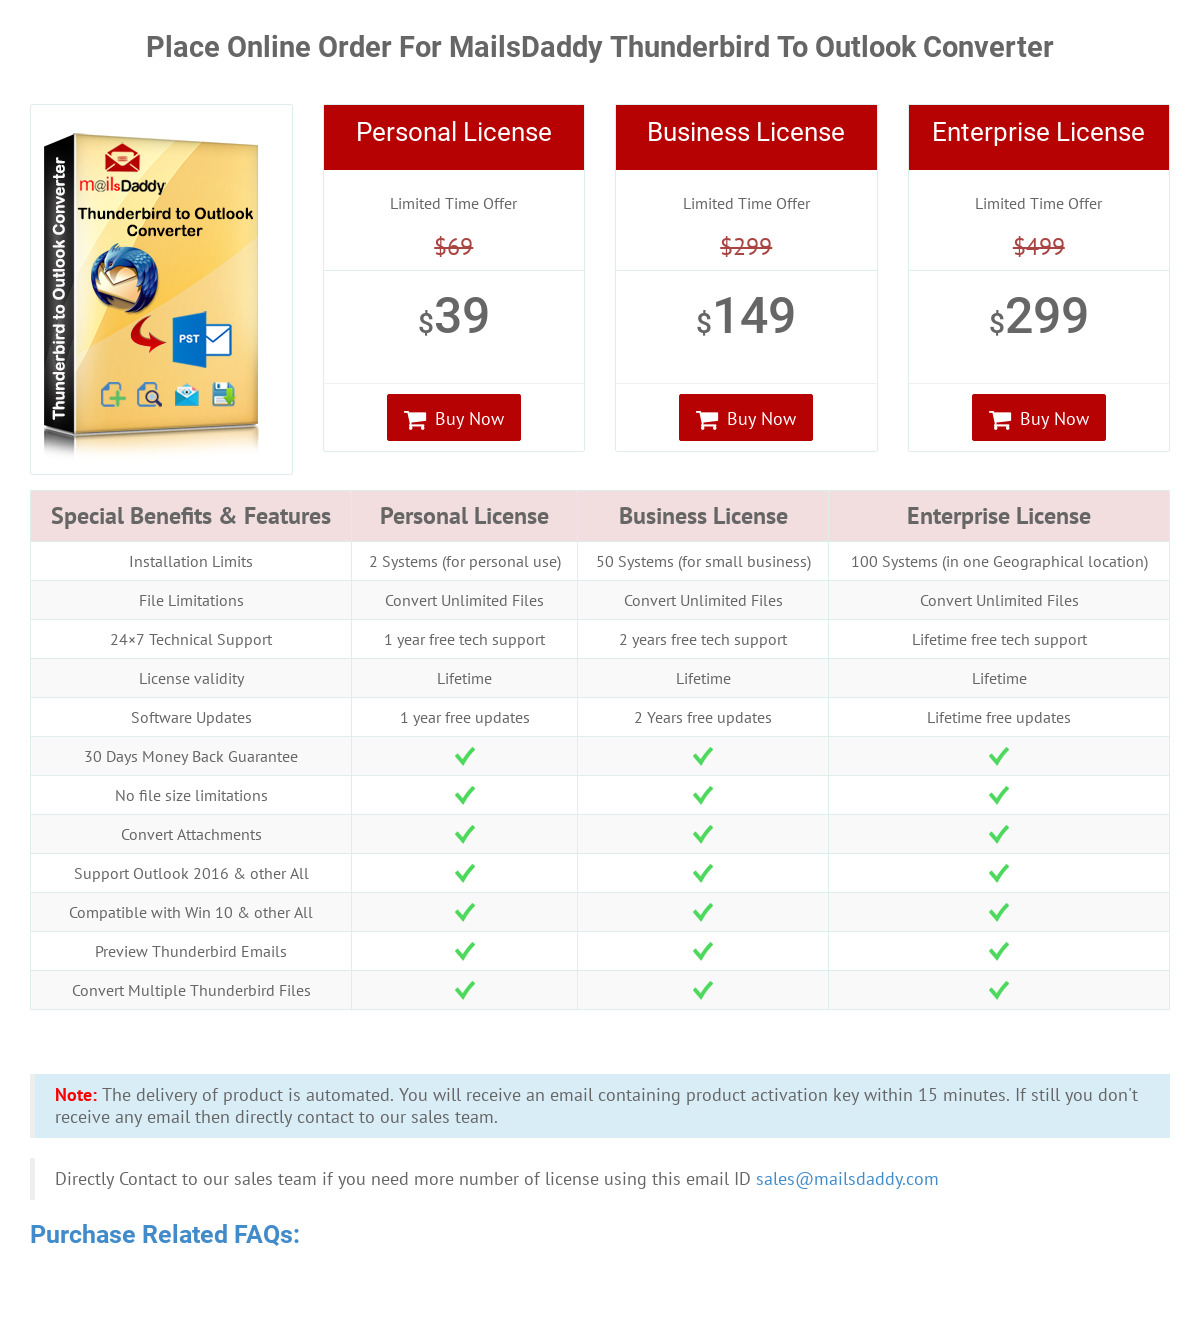 MailsDaddy Thunderbird to Outlook Converter Pricing as of 2019-07-31